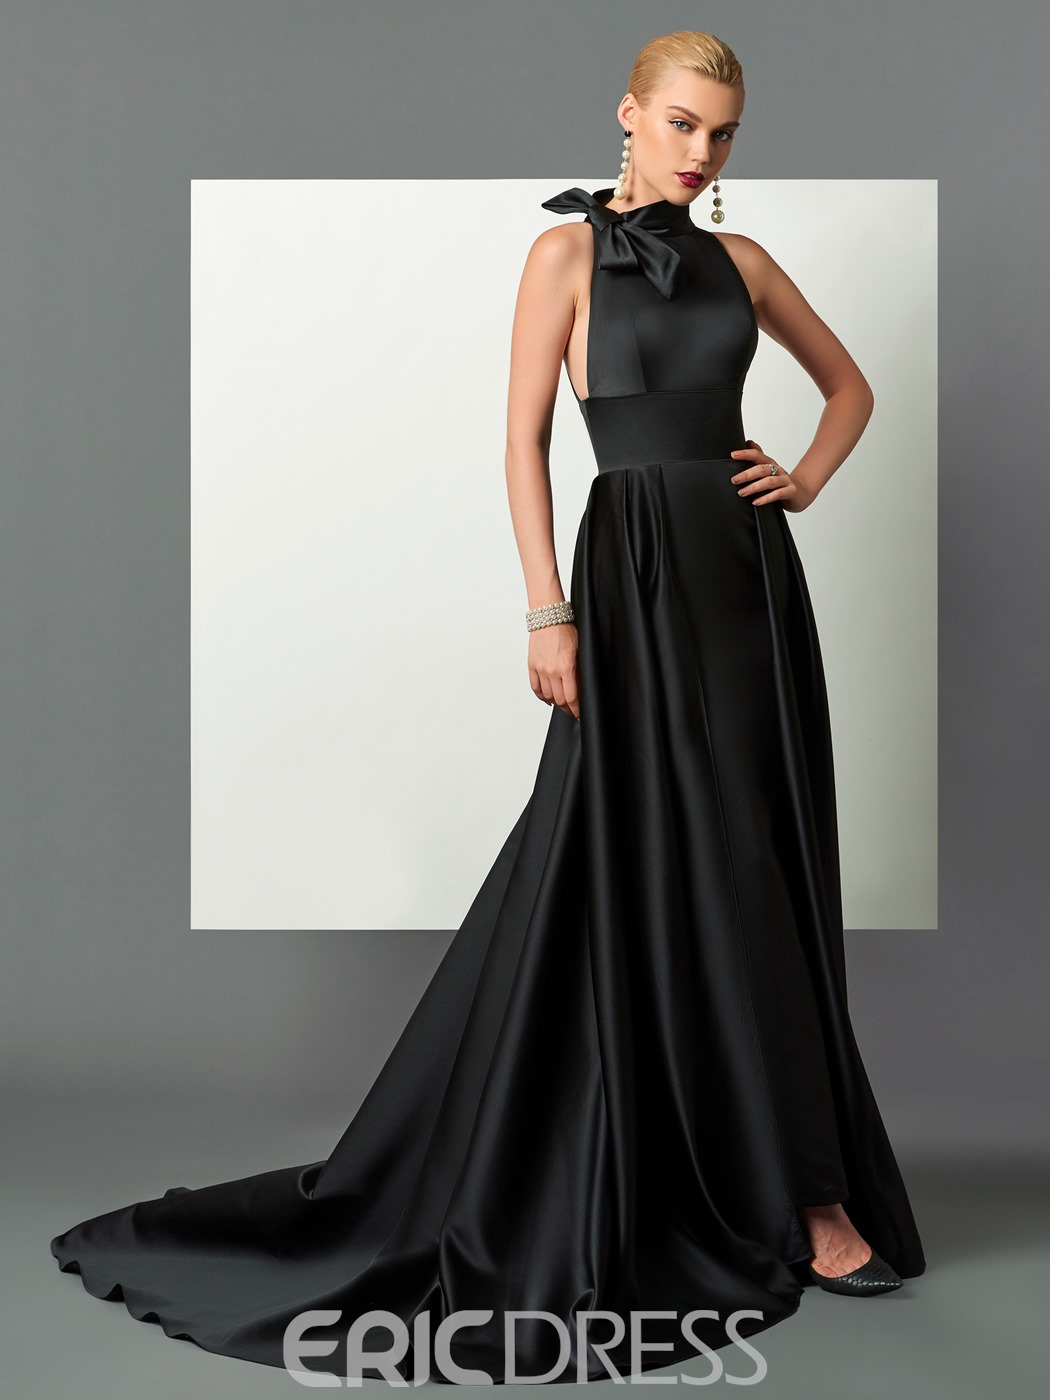 Ericdress Classic Black Halter Satin A Line Long Evening Dress